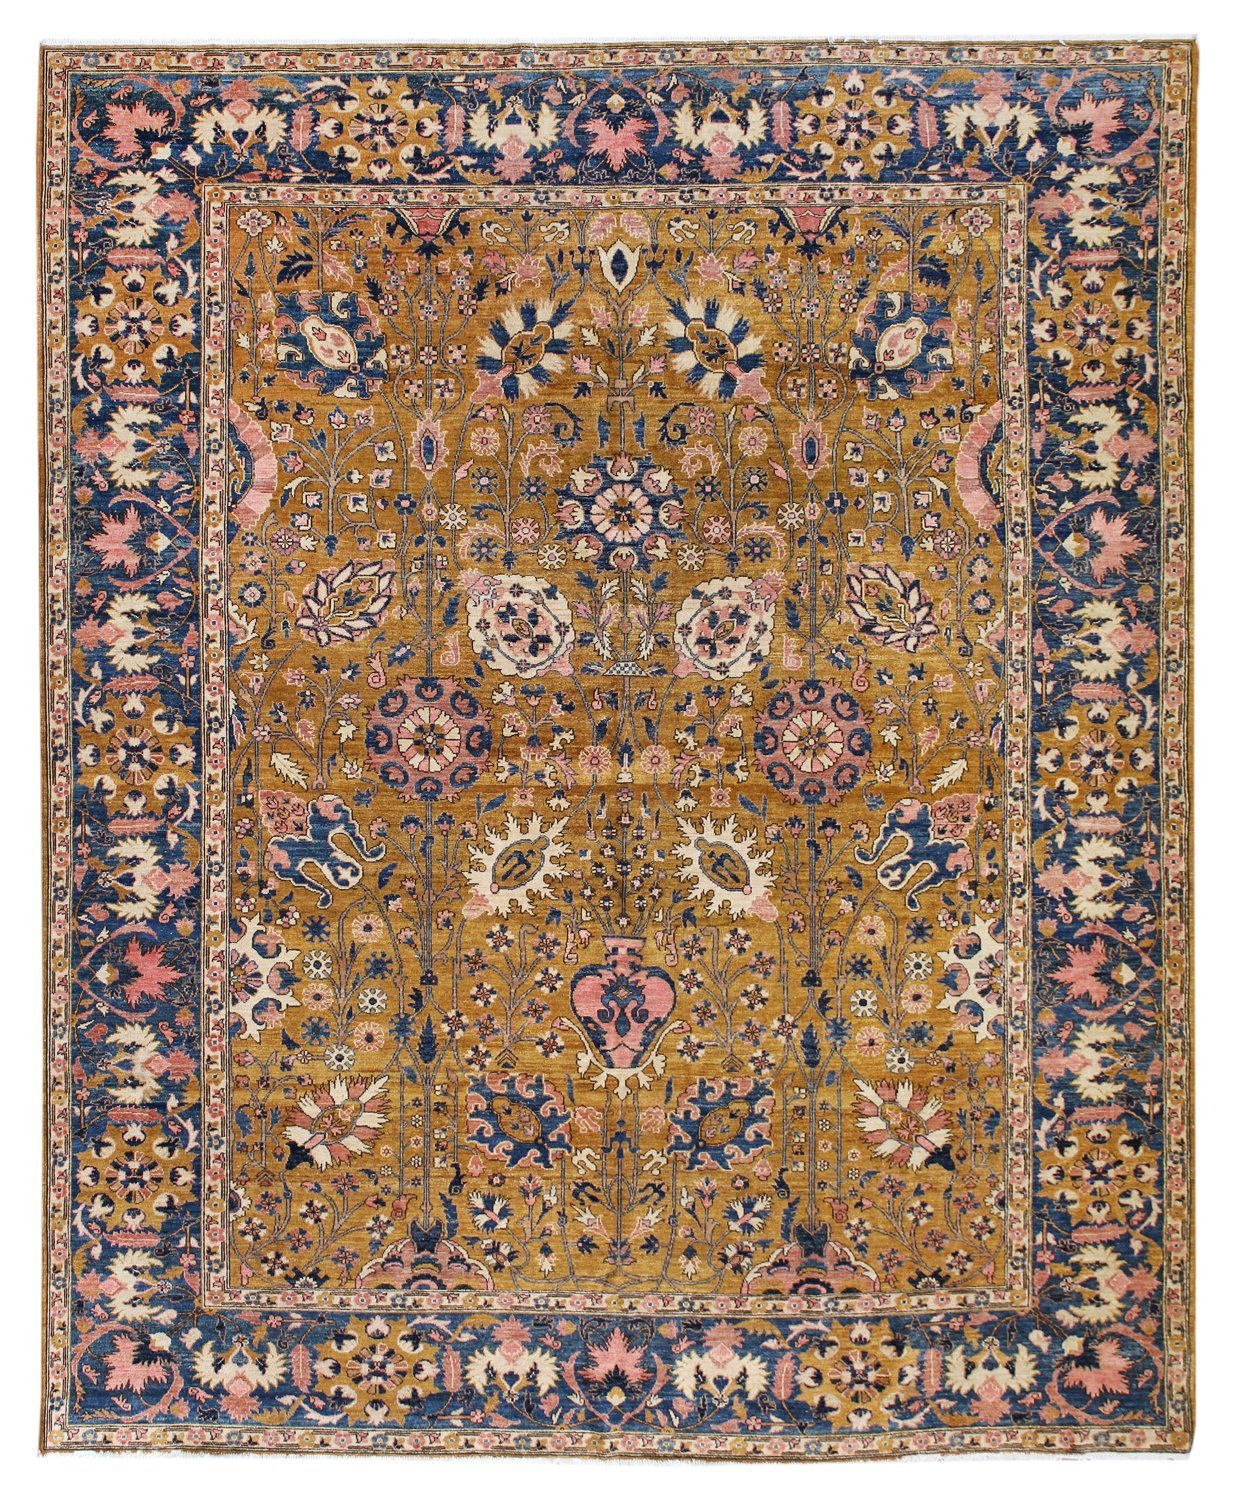 Vase Handwoven Traditional Rug